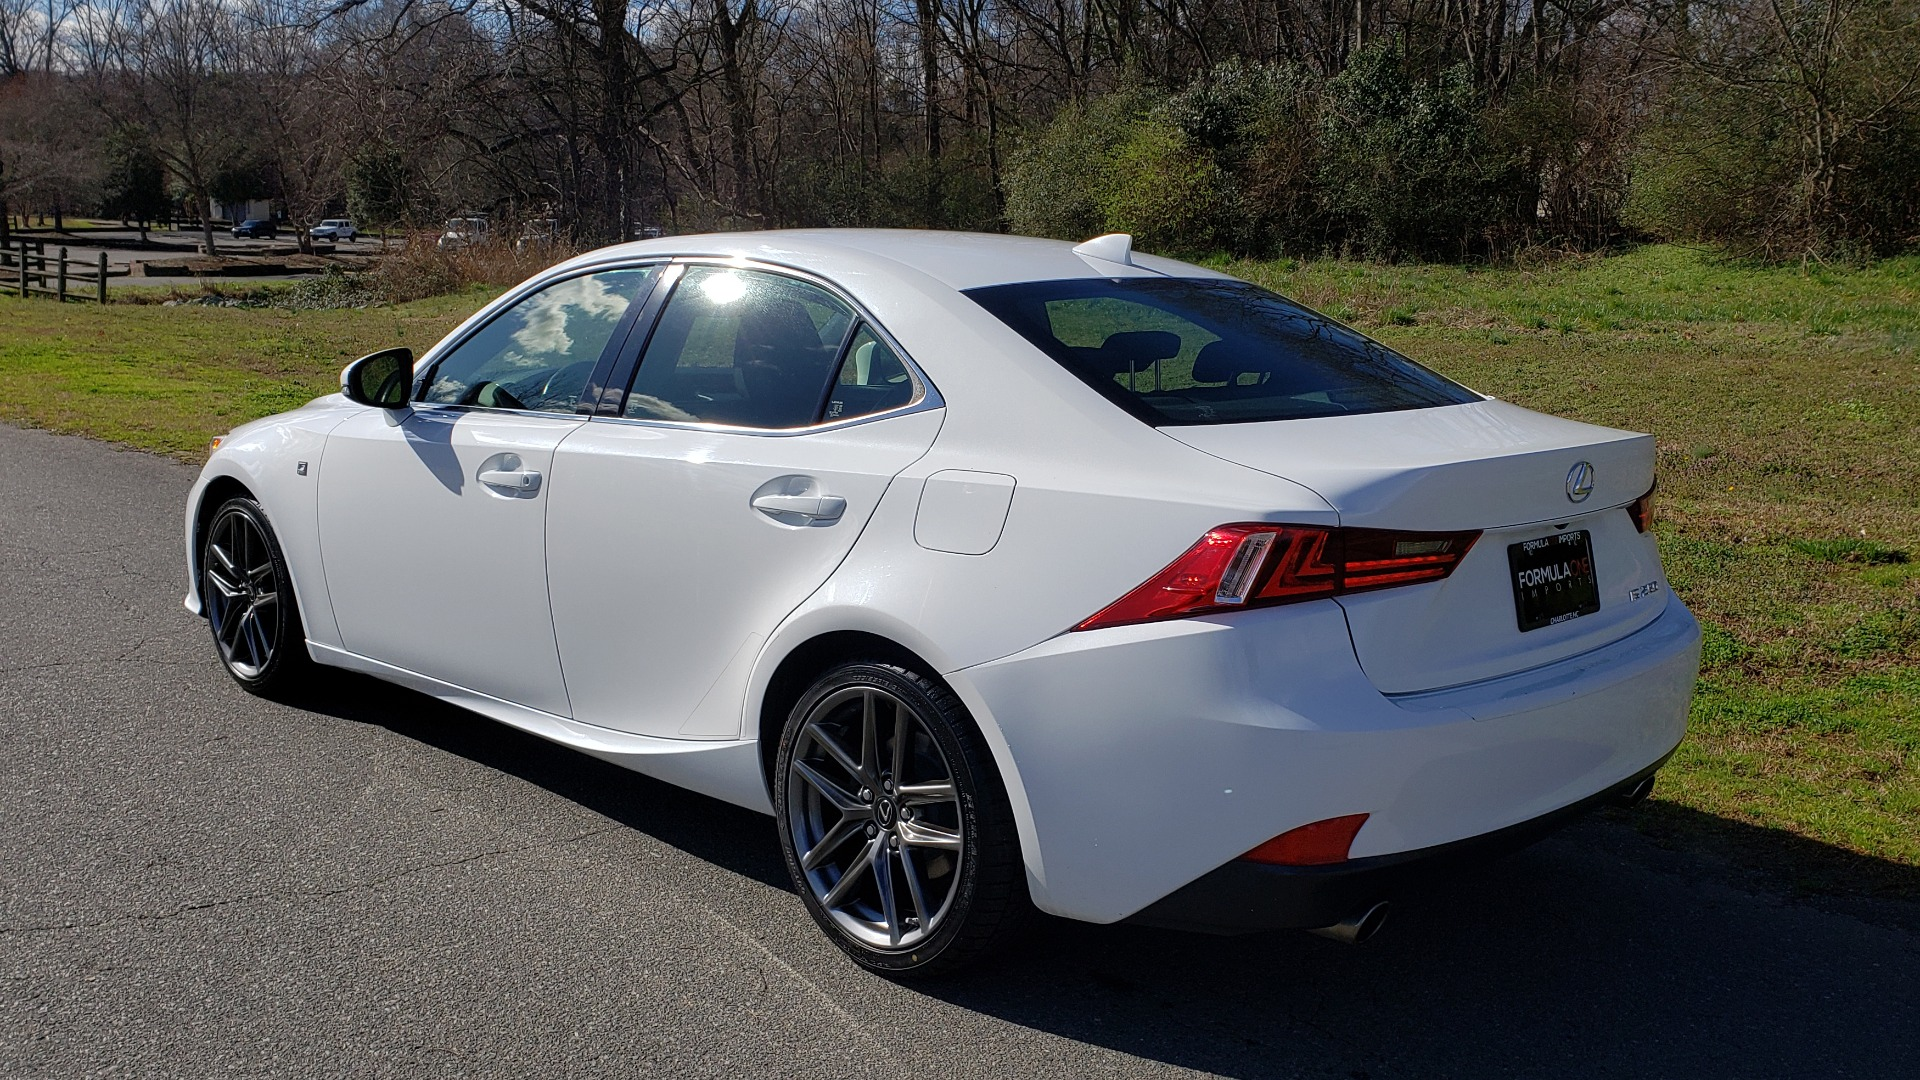 Used 2014 Lexus IS 250 F-SPORT / NAV / SUNROOF / REARVIEW / BSM for sale Sold at Formula Imports in Charlotte NC 28227 3